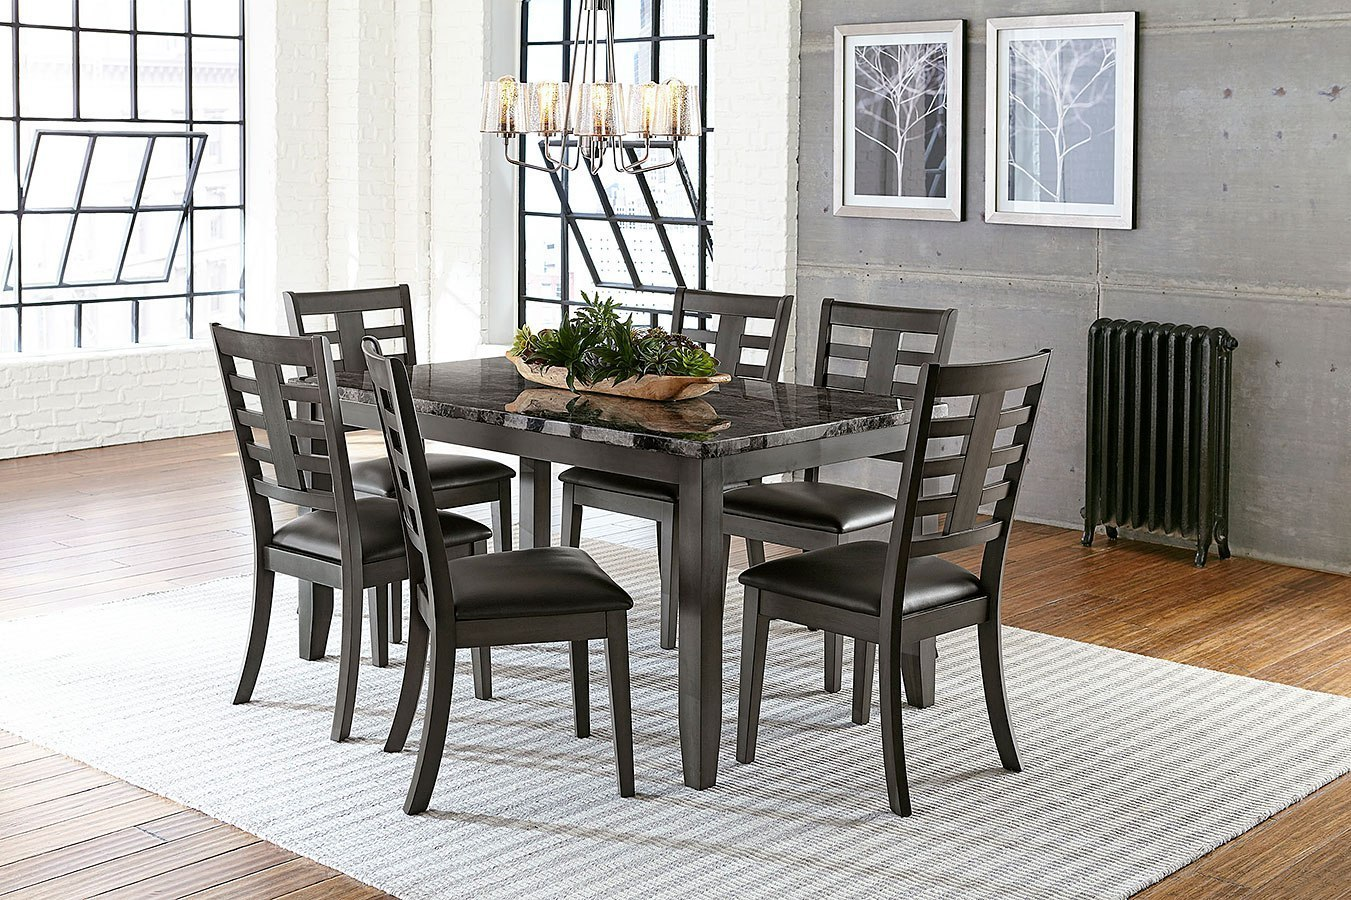 Charmant Canaan 7 Piece Dining Room Set